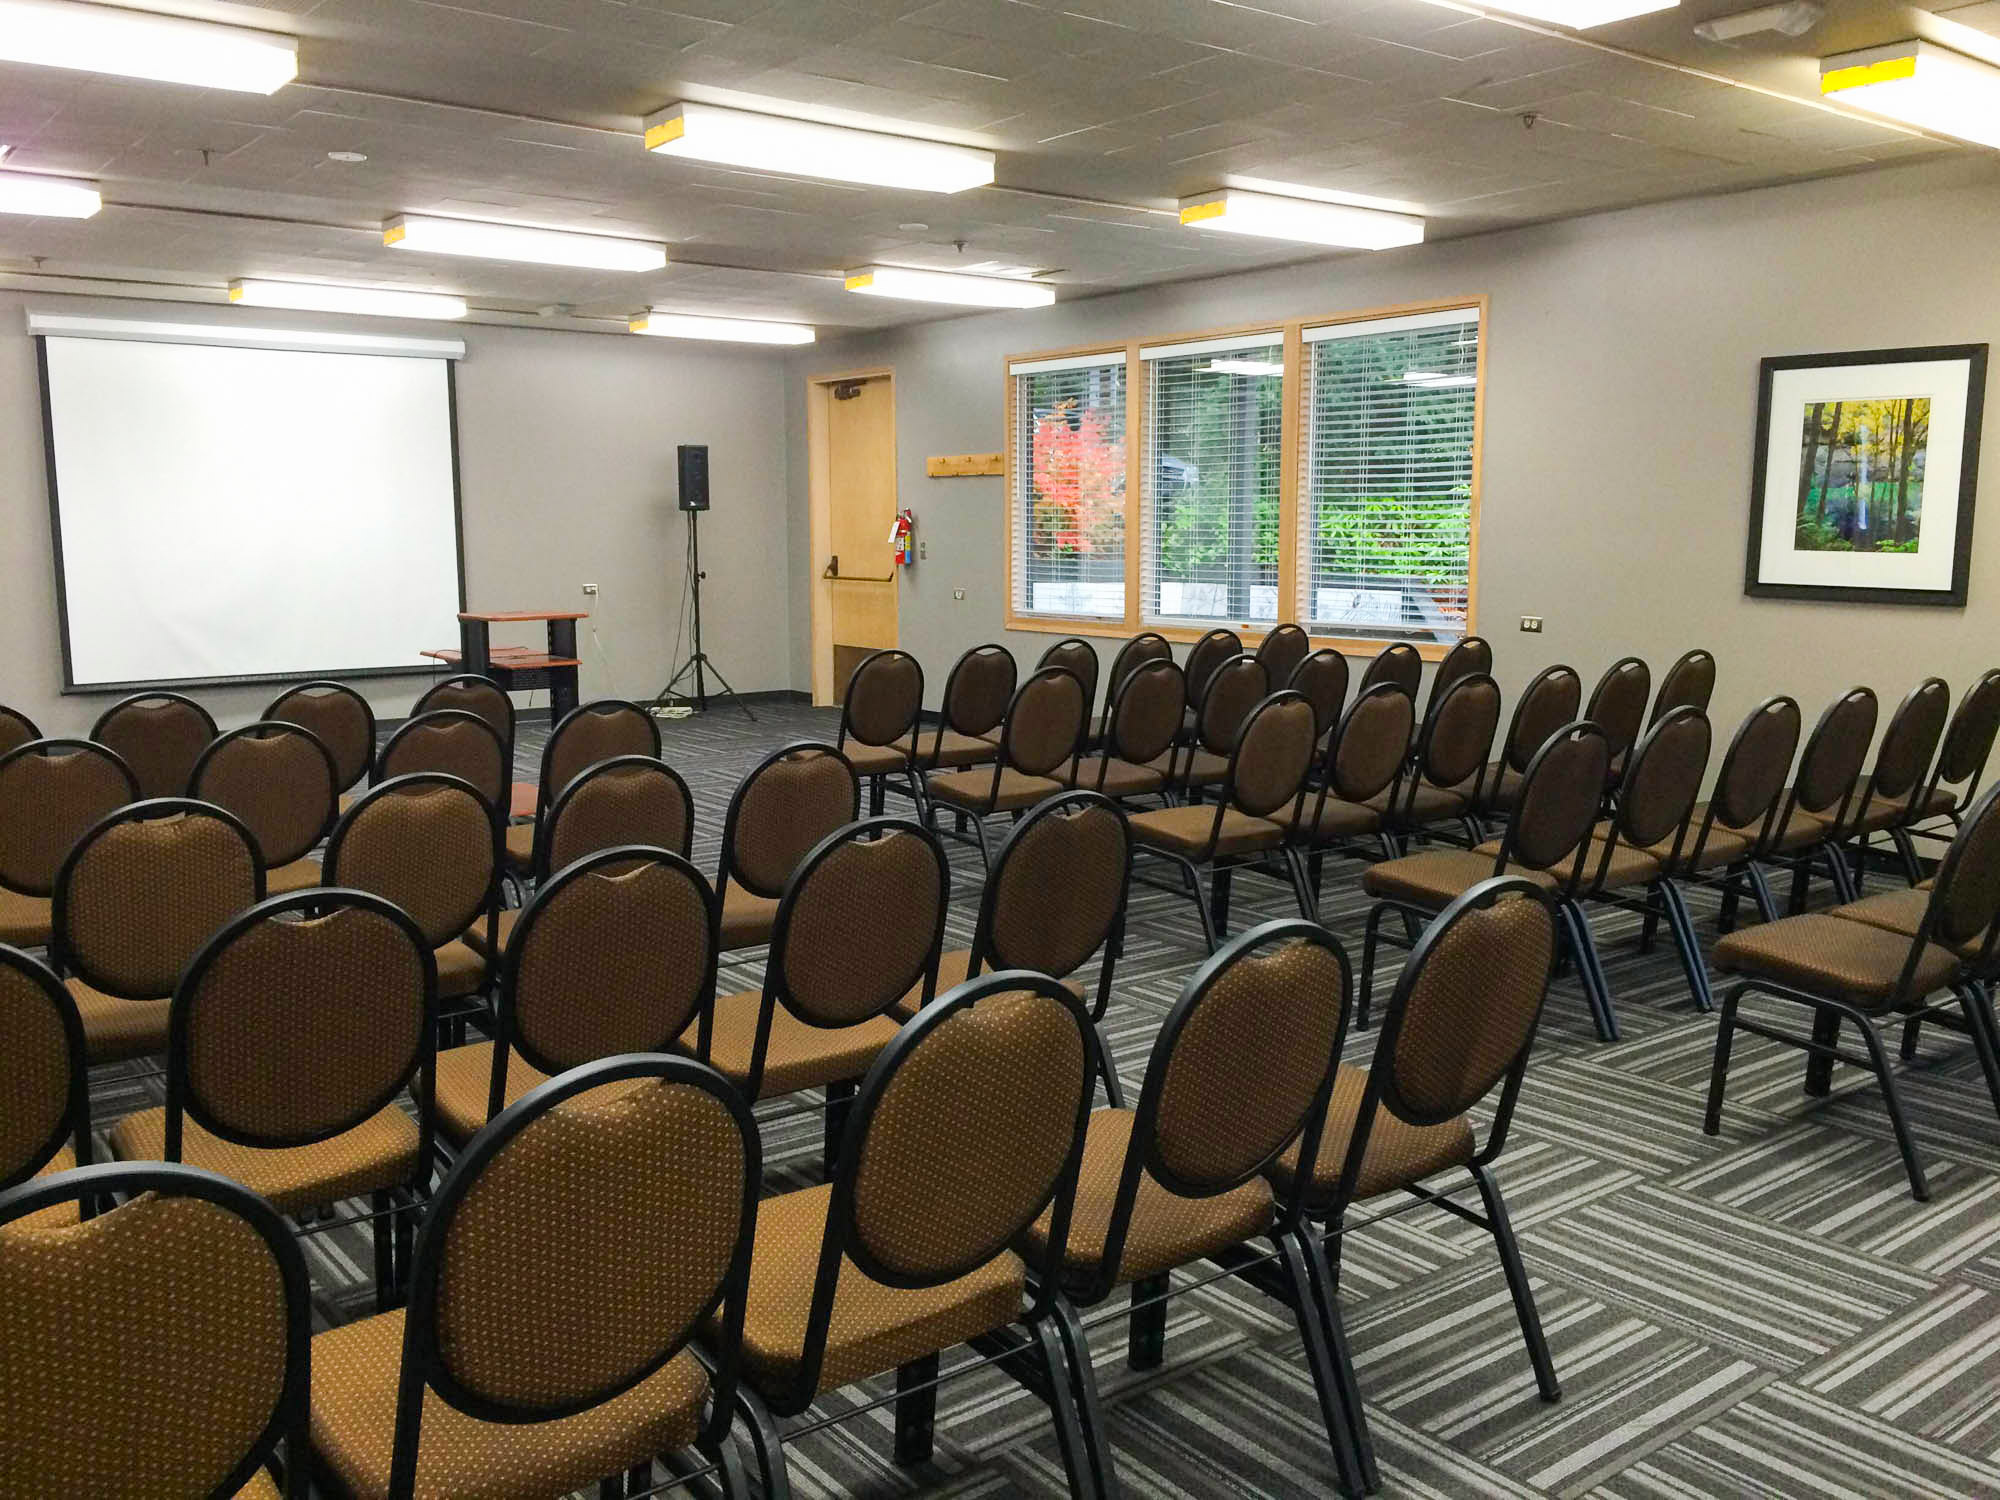 Conference room set up with chairs and projector screen